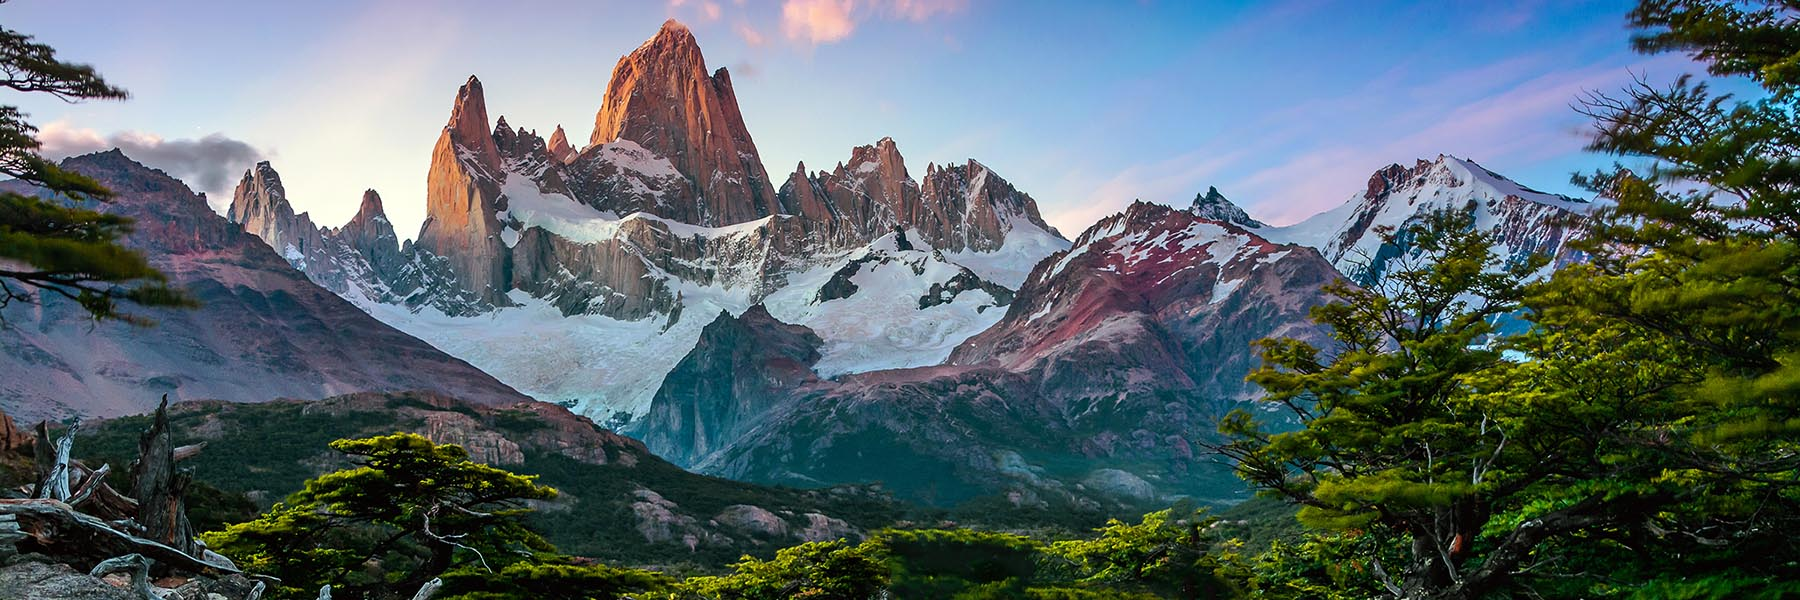 Patagonia tours in Chile